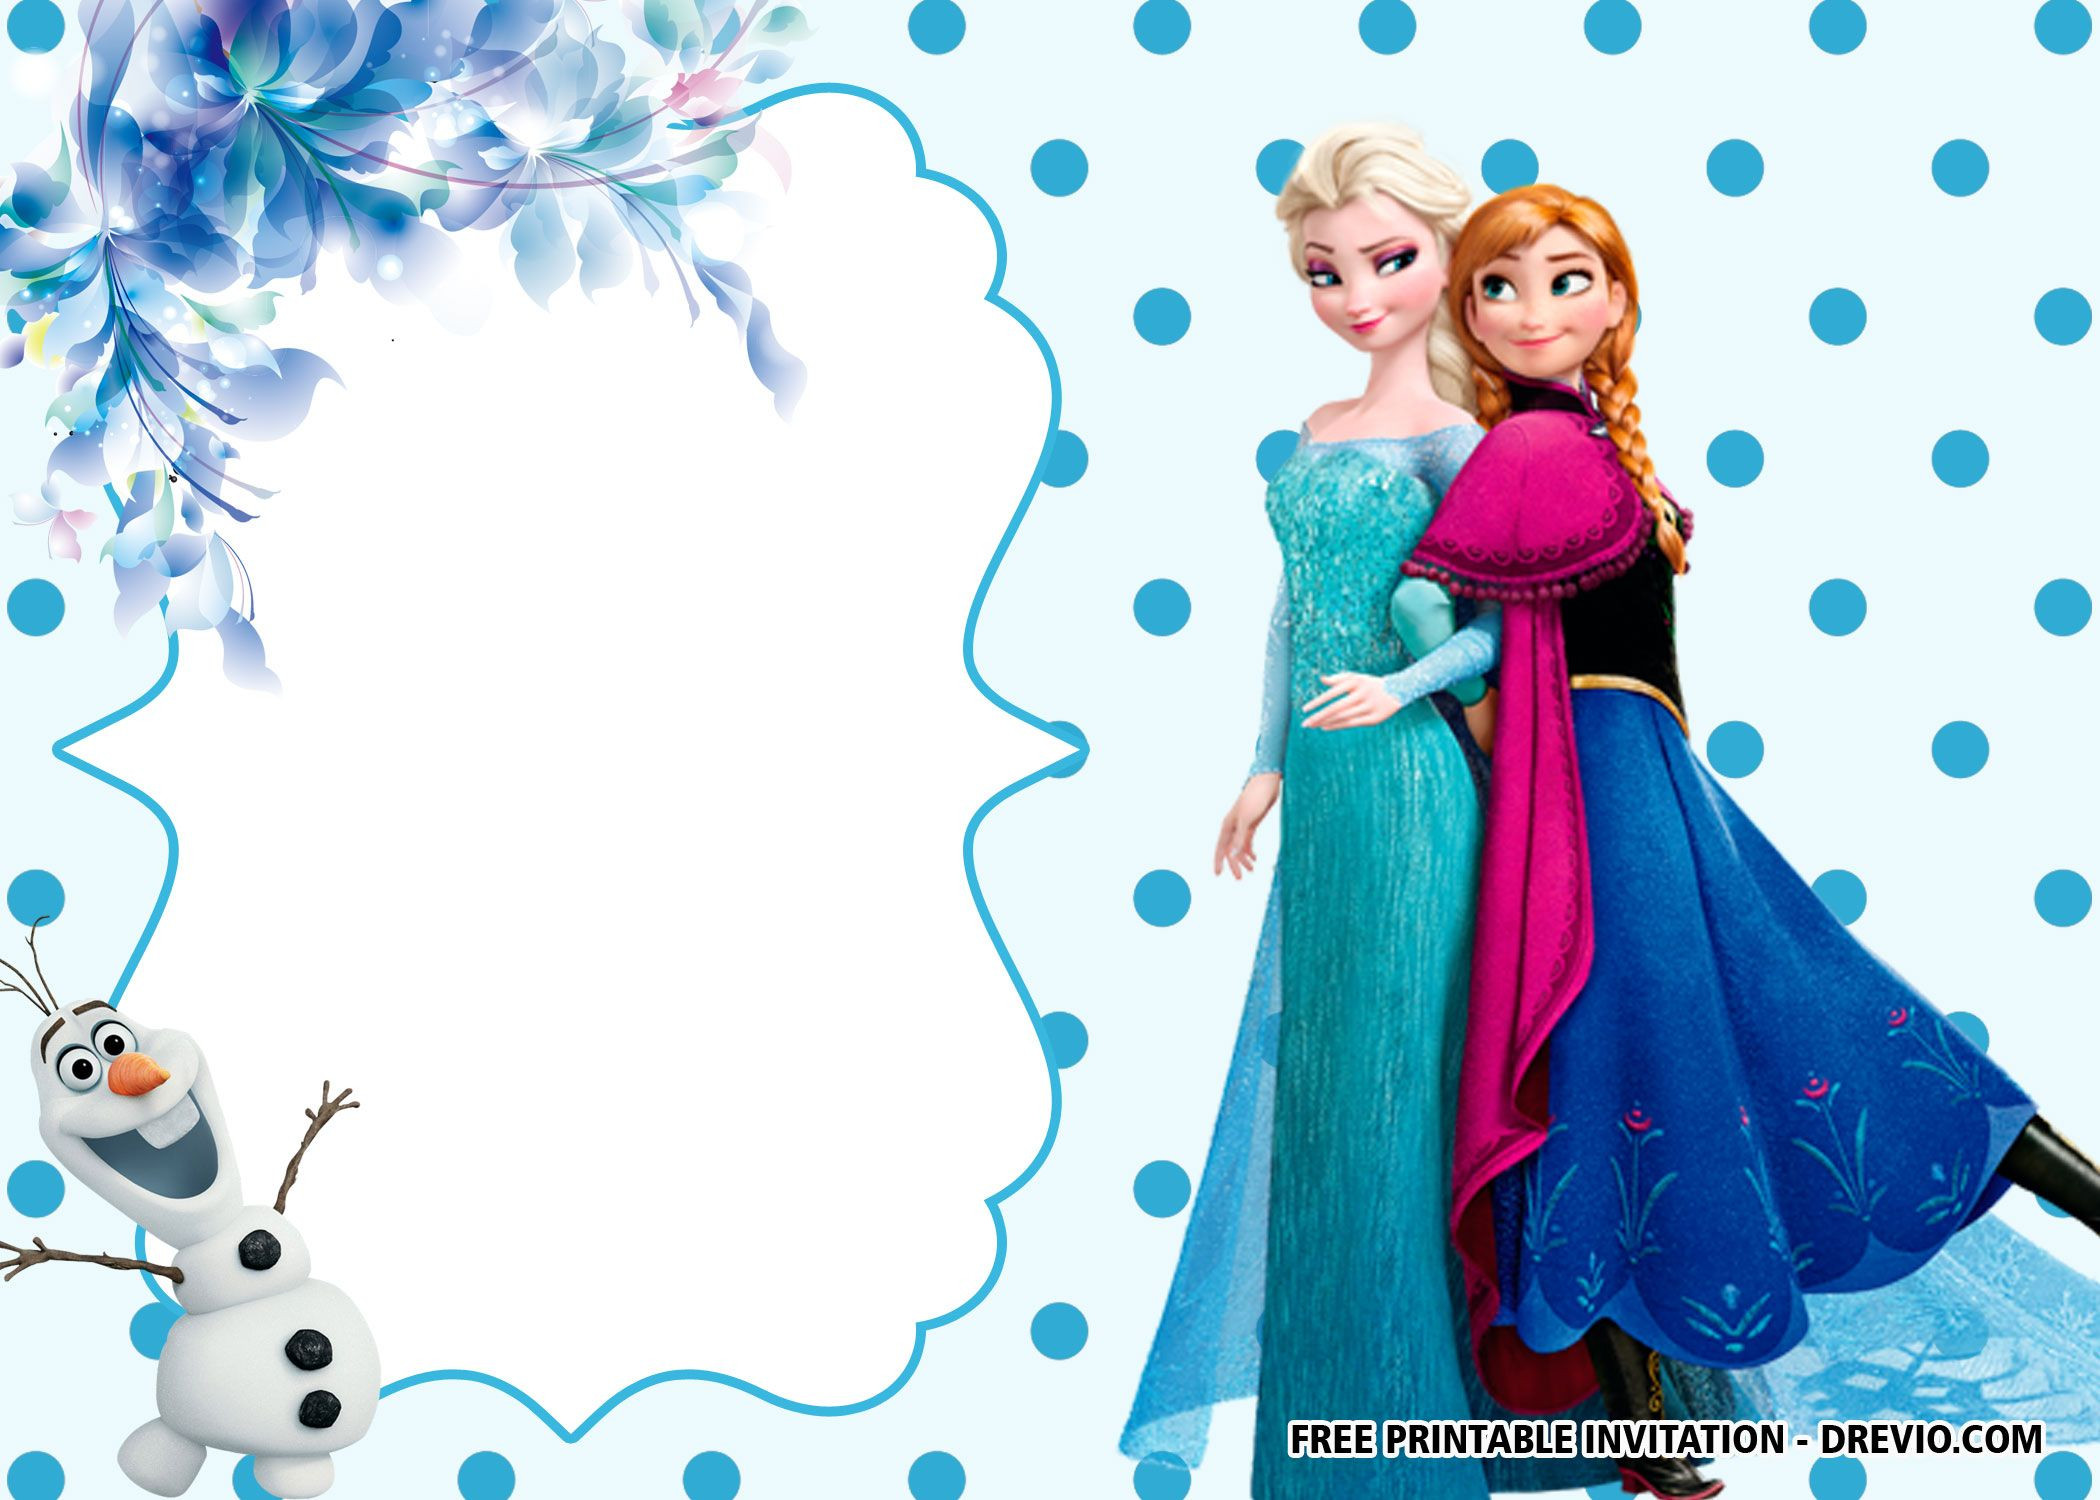 Free Frozen Invitations Printable Free Printable Frozen Anna and Elsa Invitation Templates